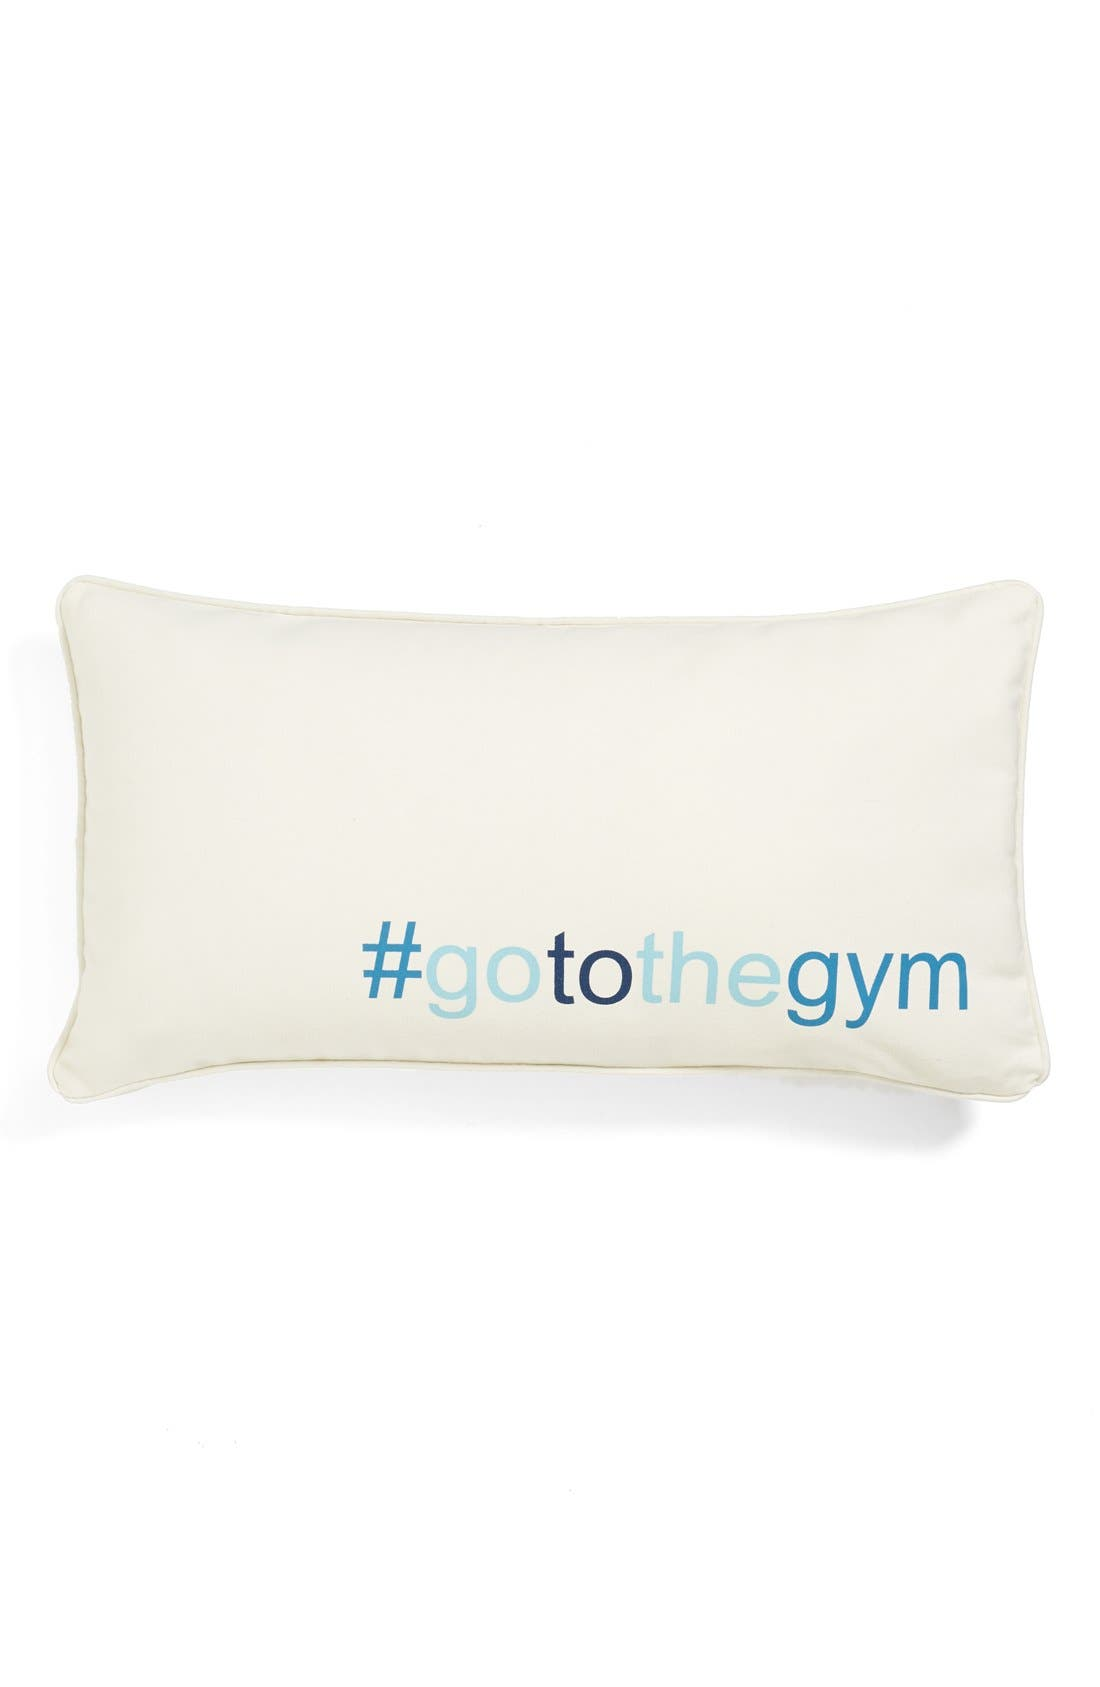 Alternate Image 1 Selected - Levtex '#gotothegym' Pillow